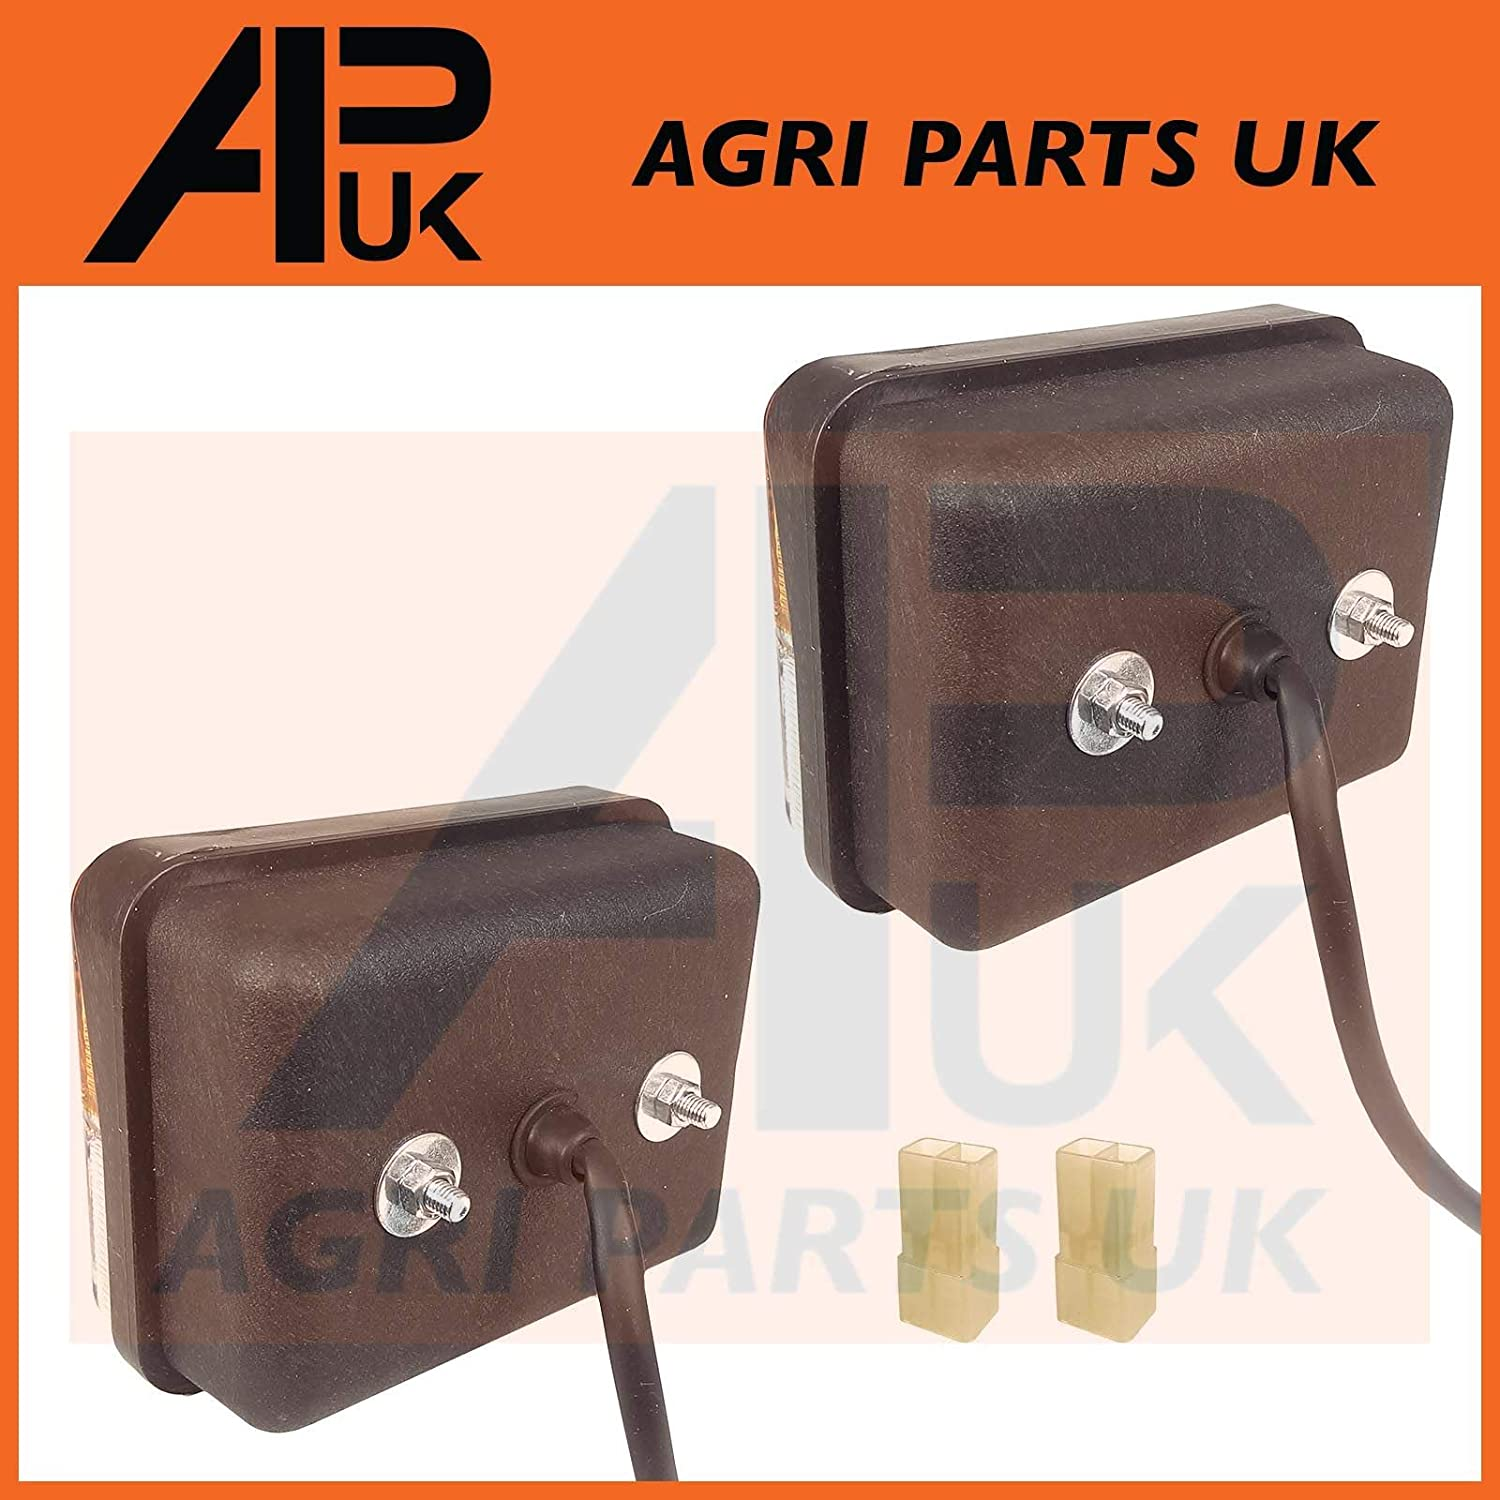 APUK PAIR of Front Side Light Lamp Indicator Compatible with Massey Ferguson 240 265 290 590 595 Tractor